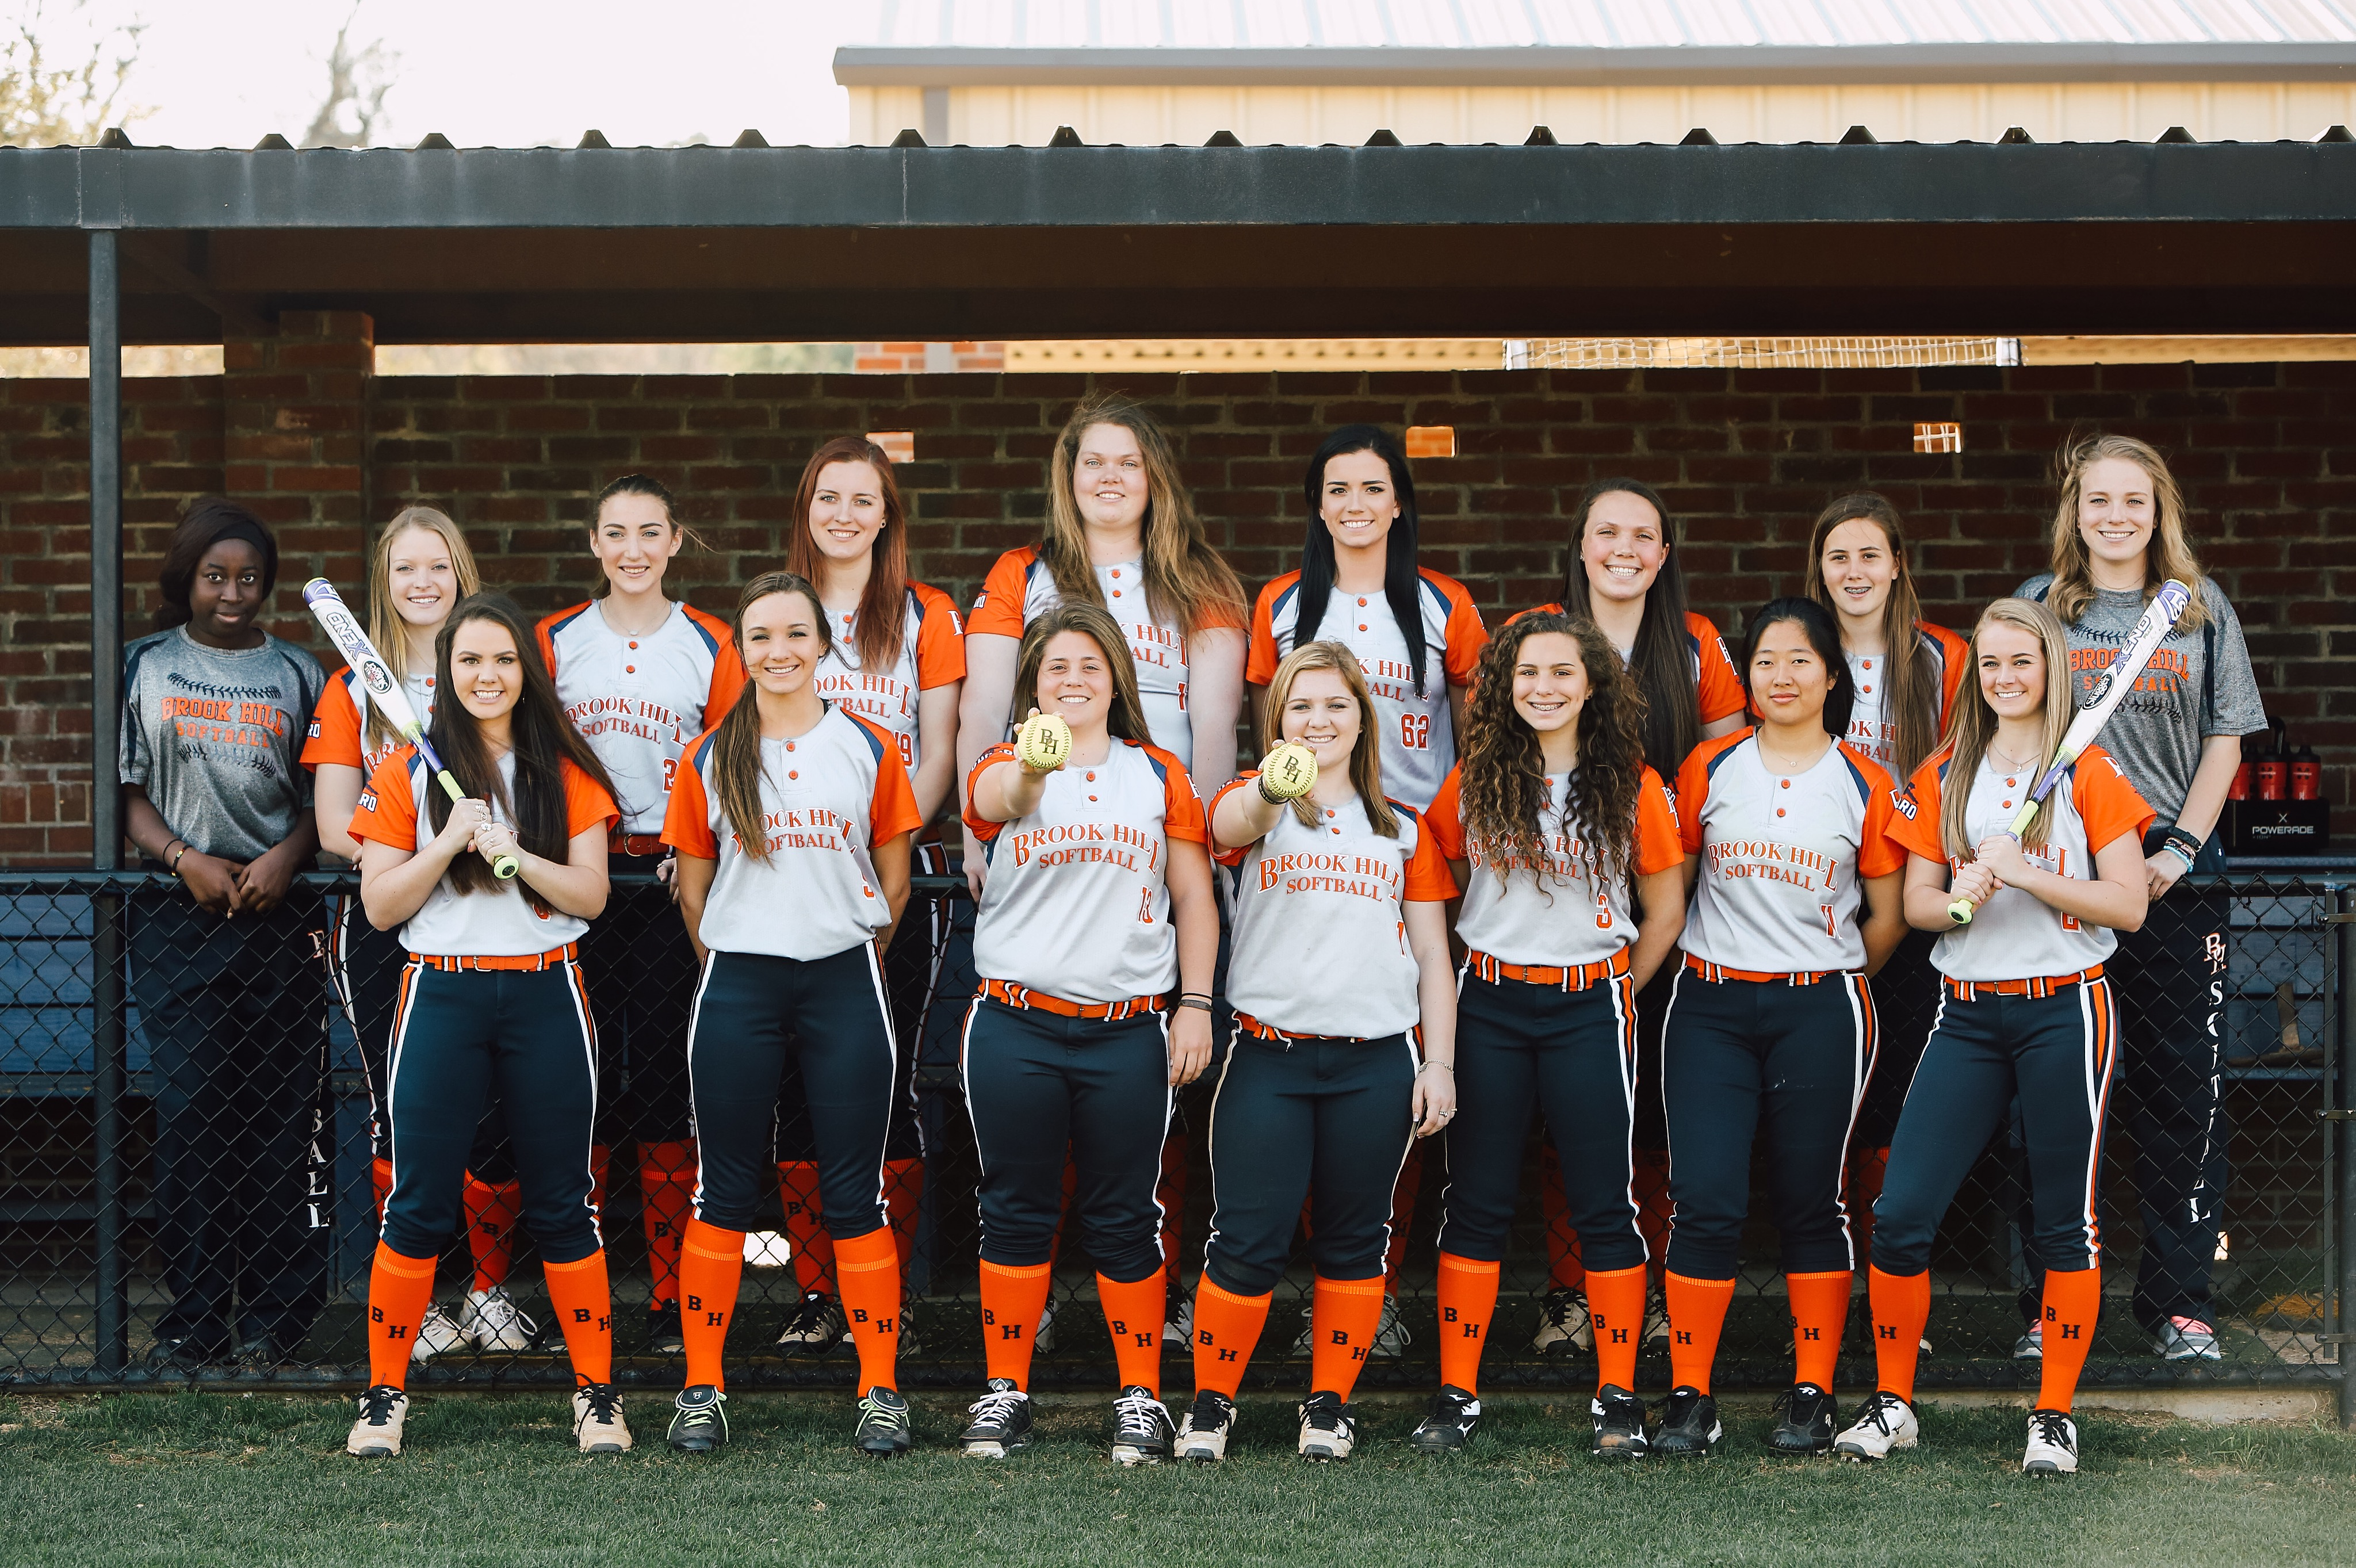 Brook Hill softball team photo (going to state!)